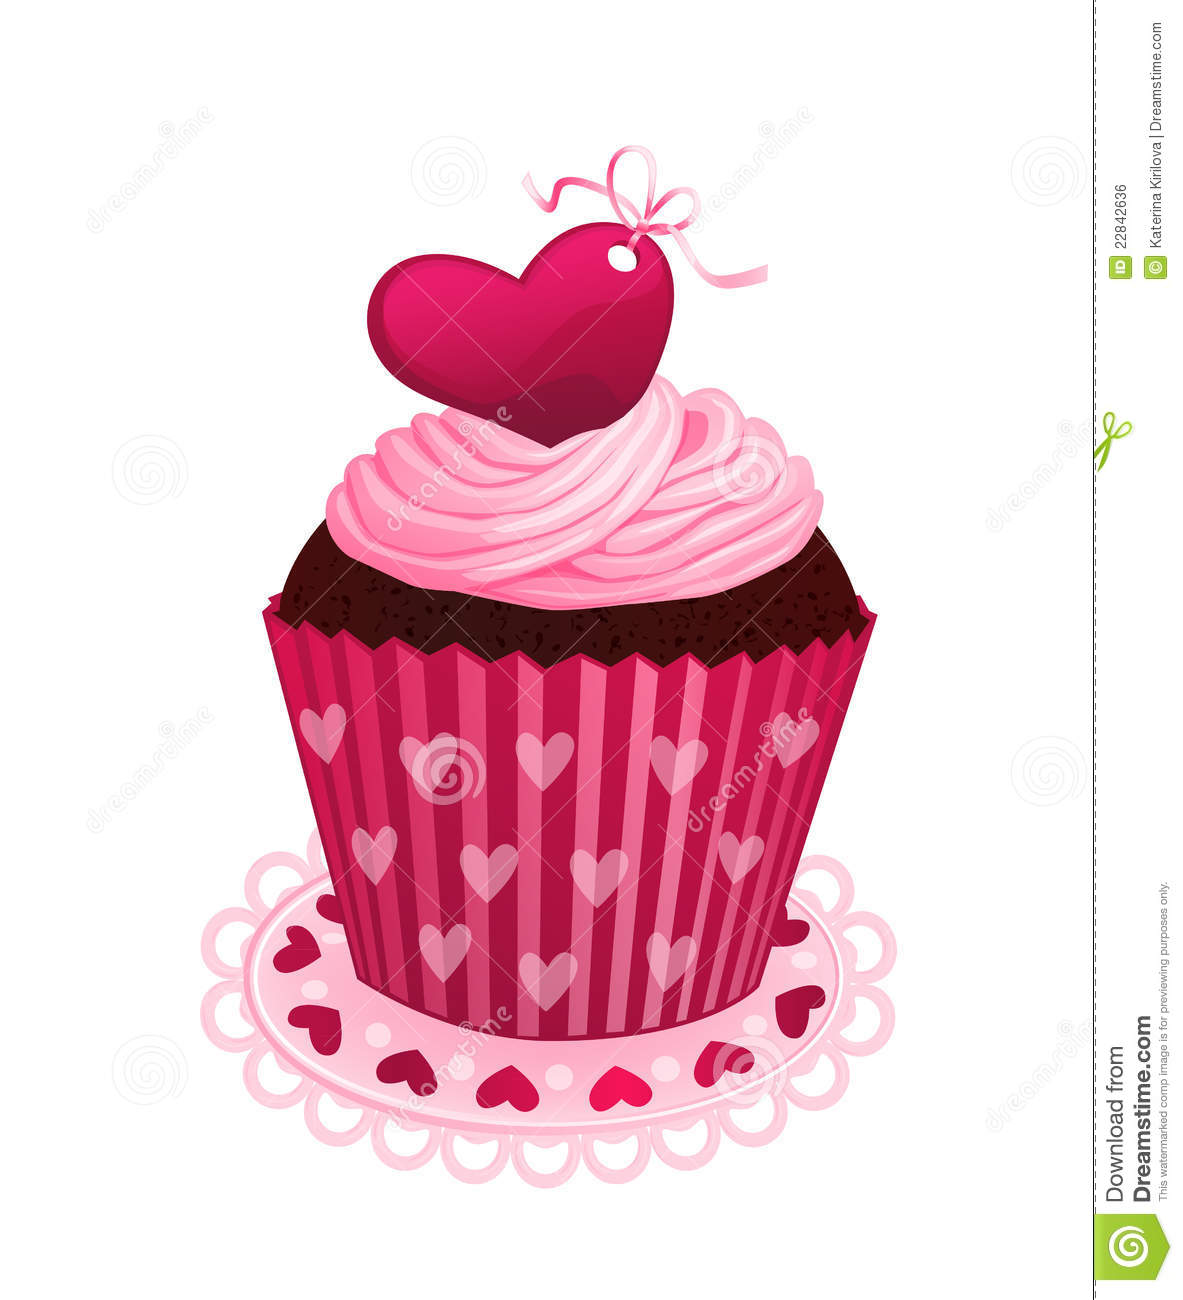 happy valentine's day chocolate cake - Valentine day cupcake stock vector Image of ribbon heart